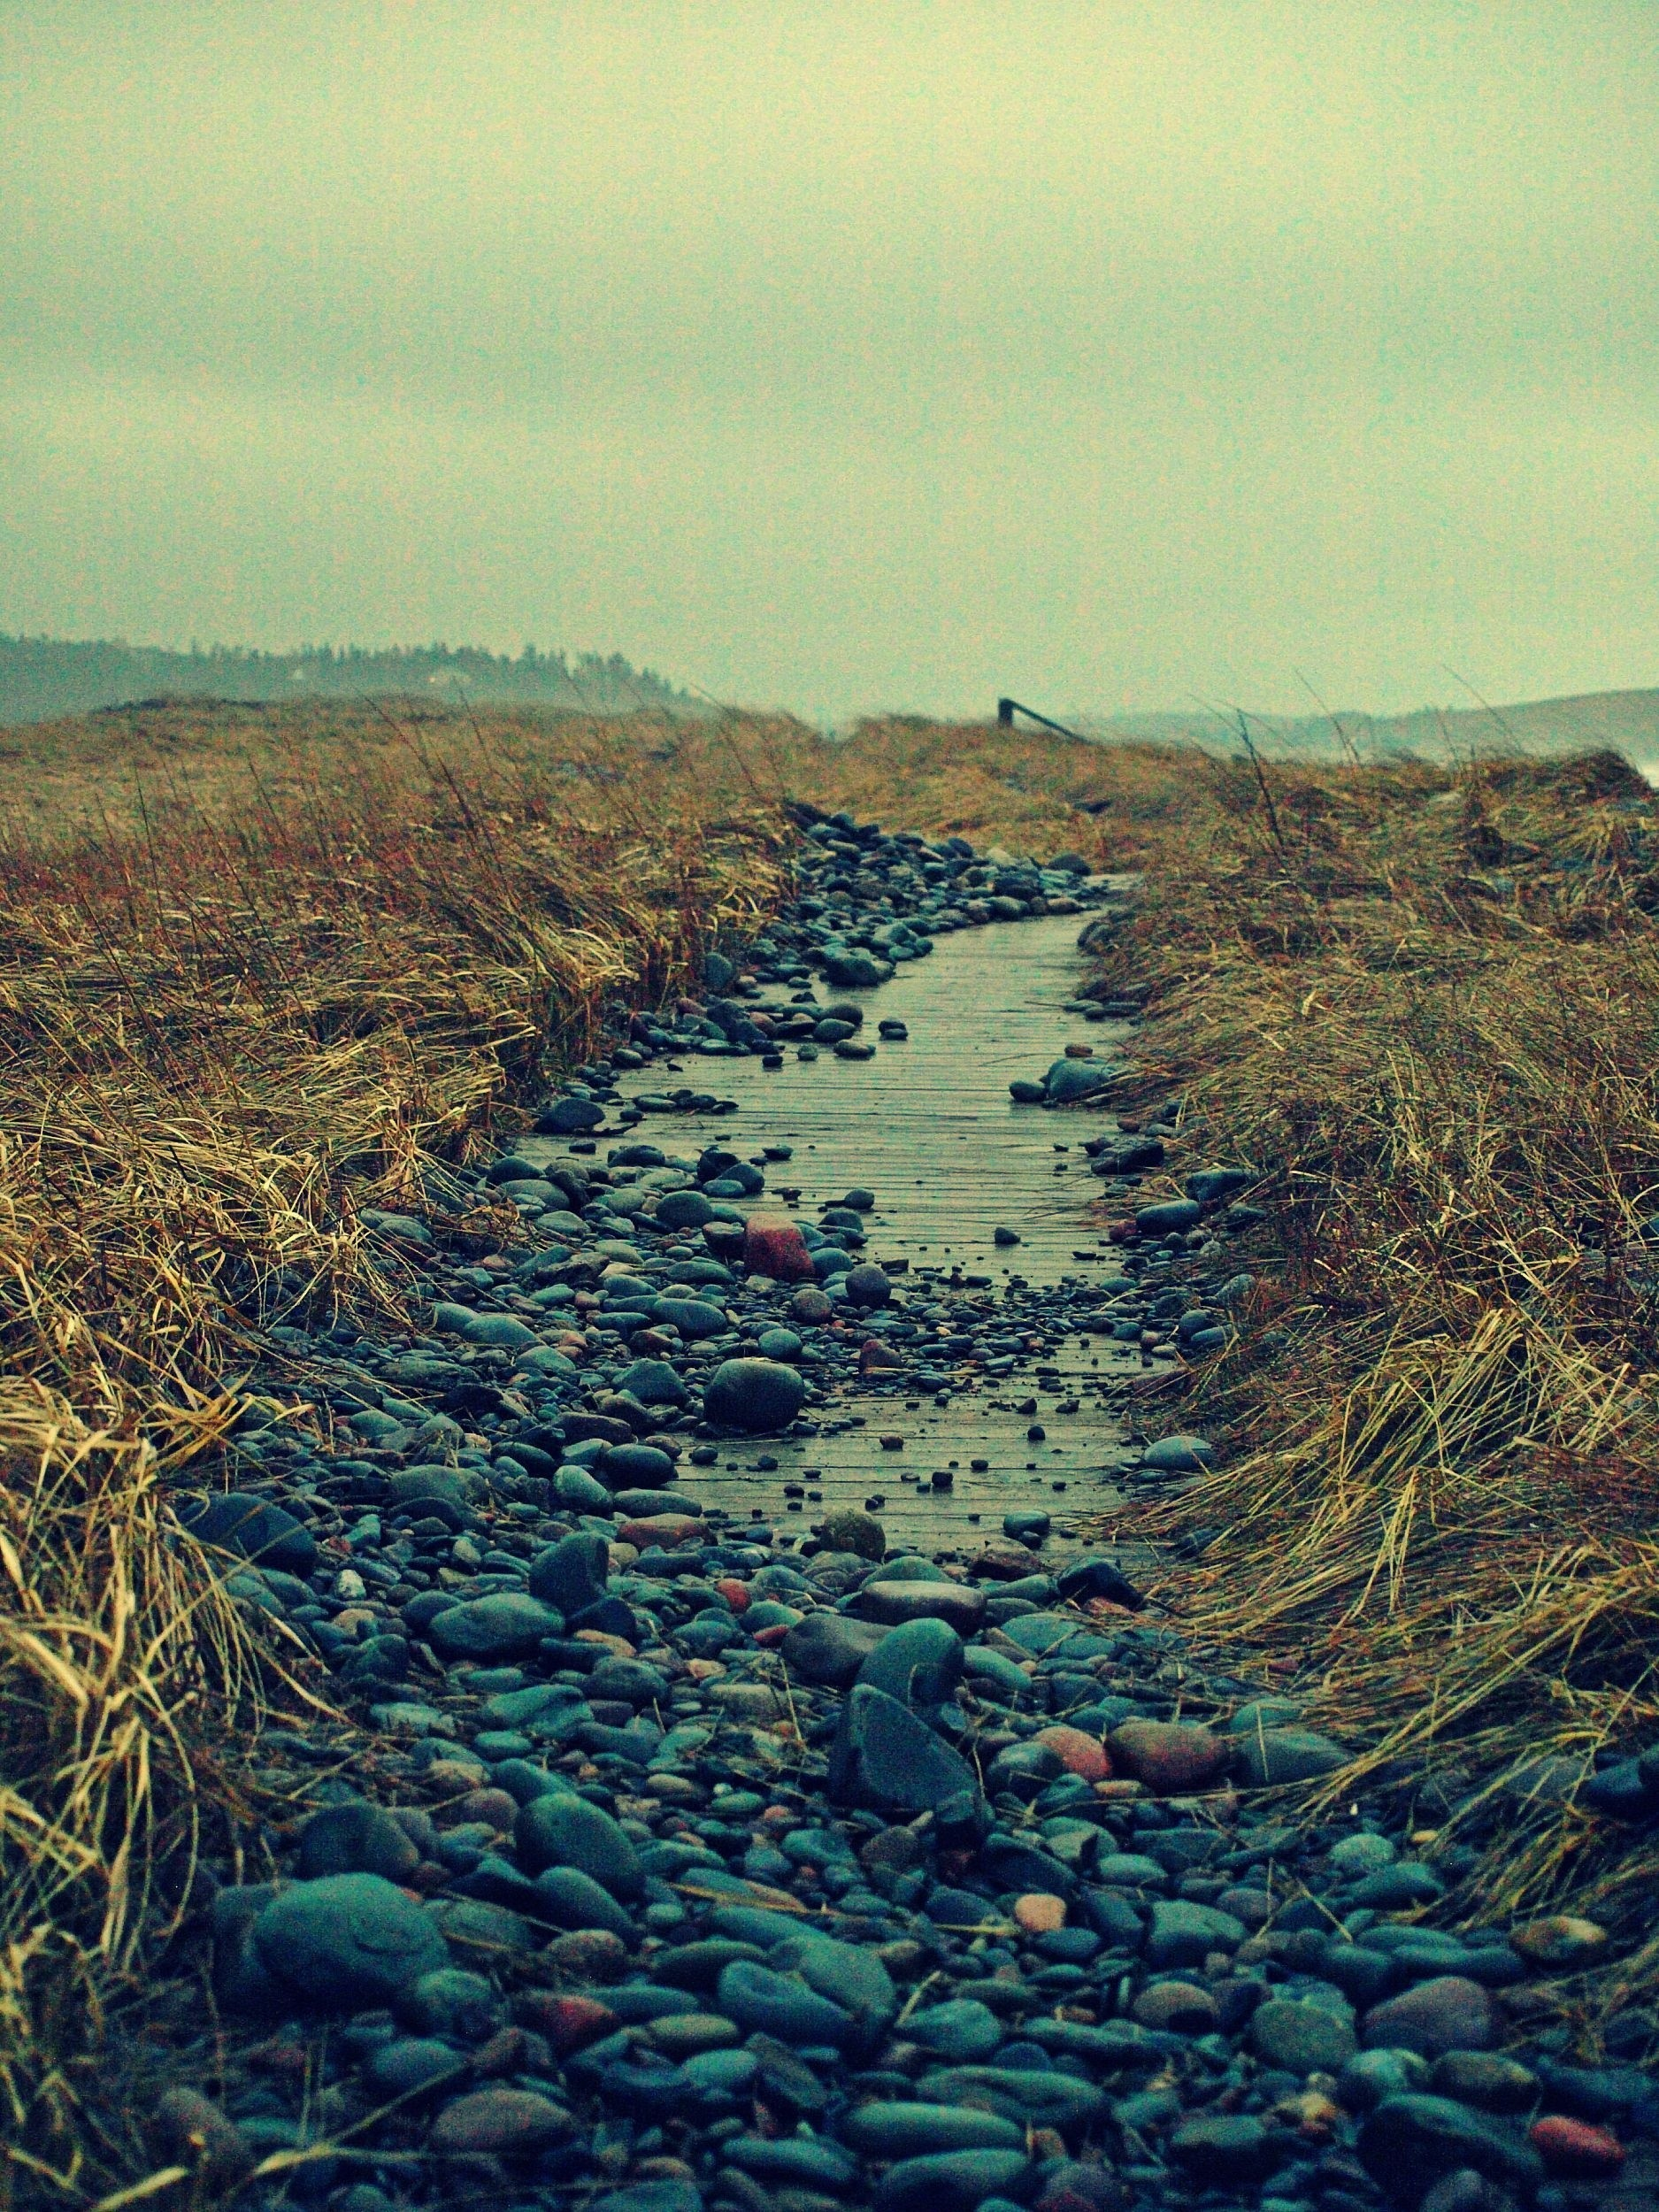 amattatall's photo of Lawrencetown